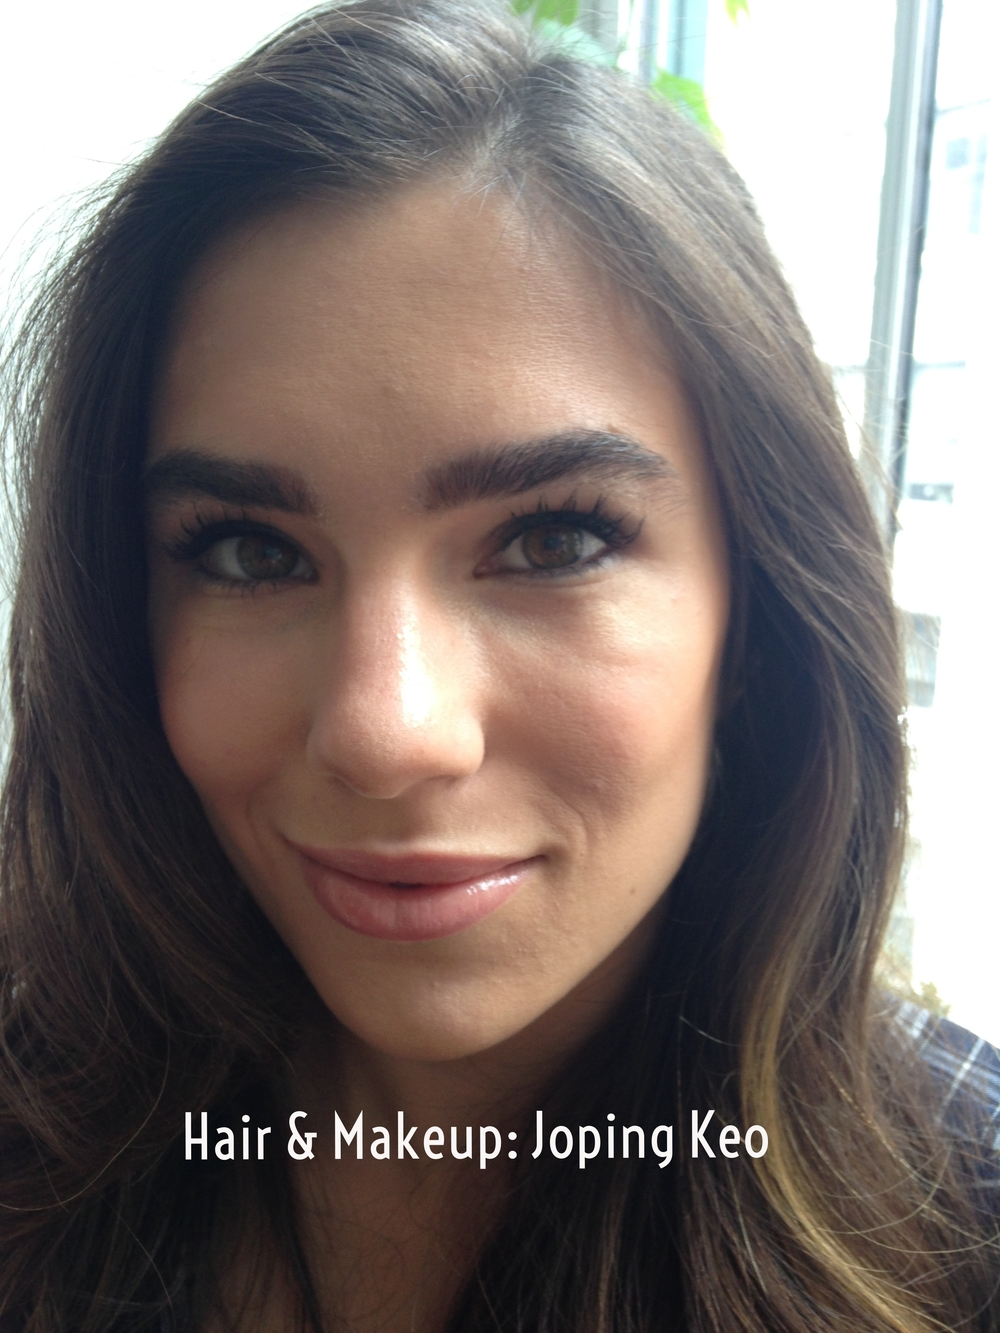 Hair & Makeup: Joping Keo